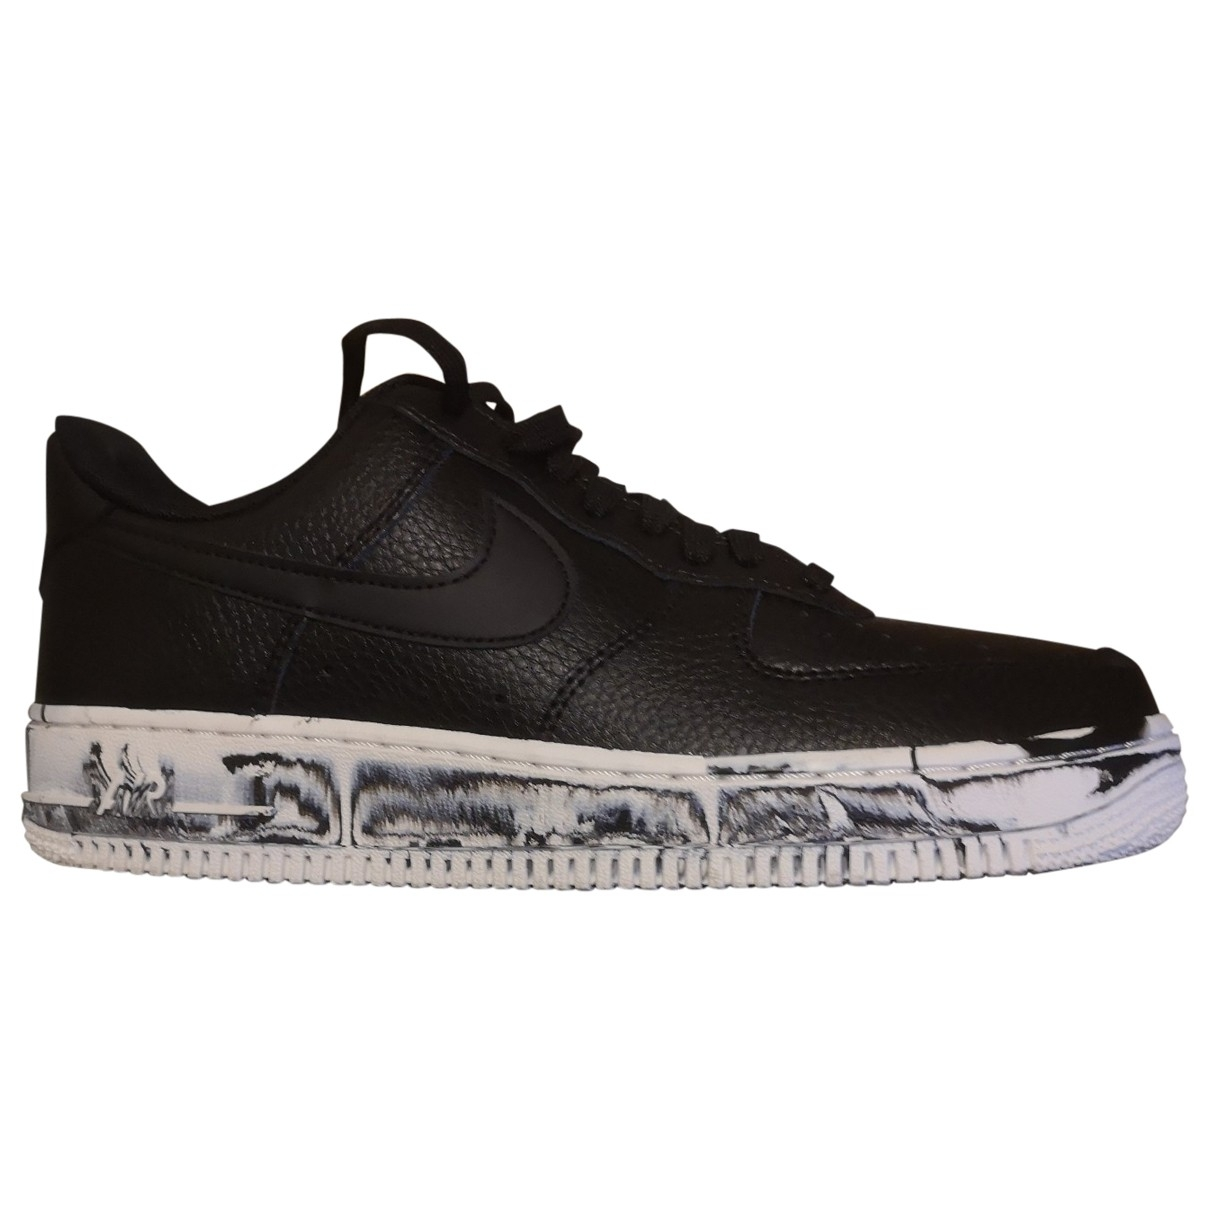 Nike Air Force 1 Multicolour Leather Trainers for Women 40.5 EU